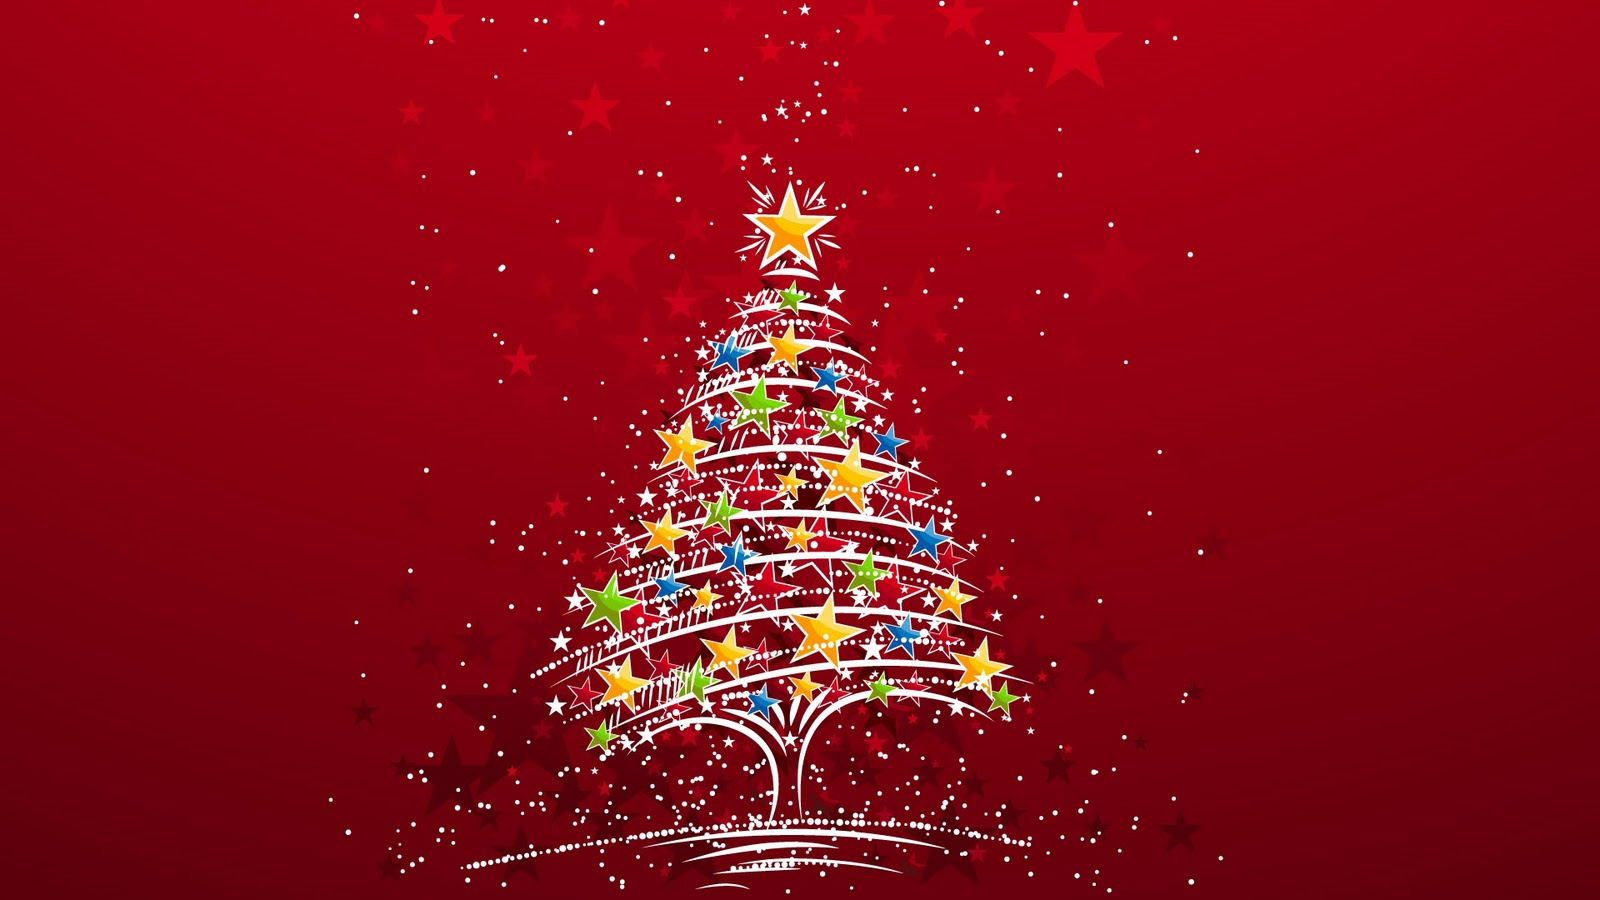 Free Christmas Wallpaper | Nice Christmas Images | GZHaixieR